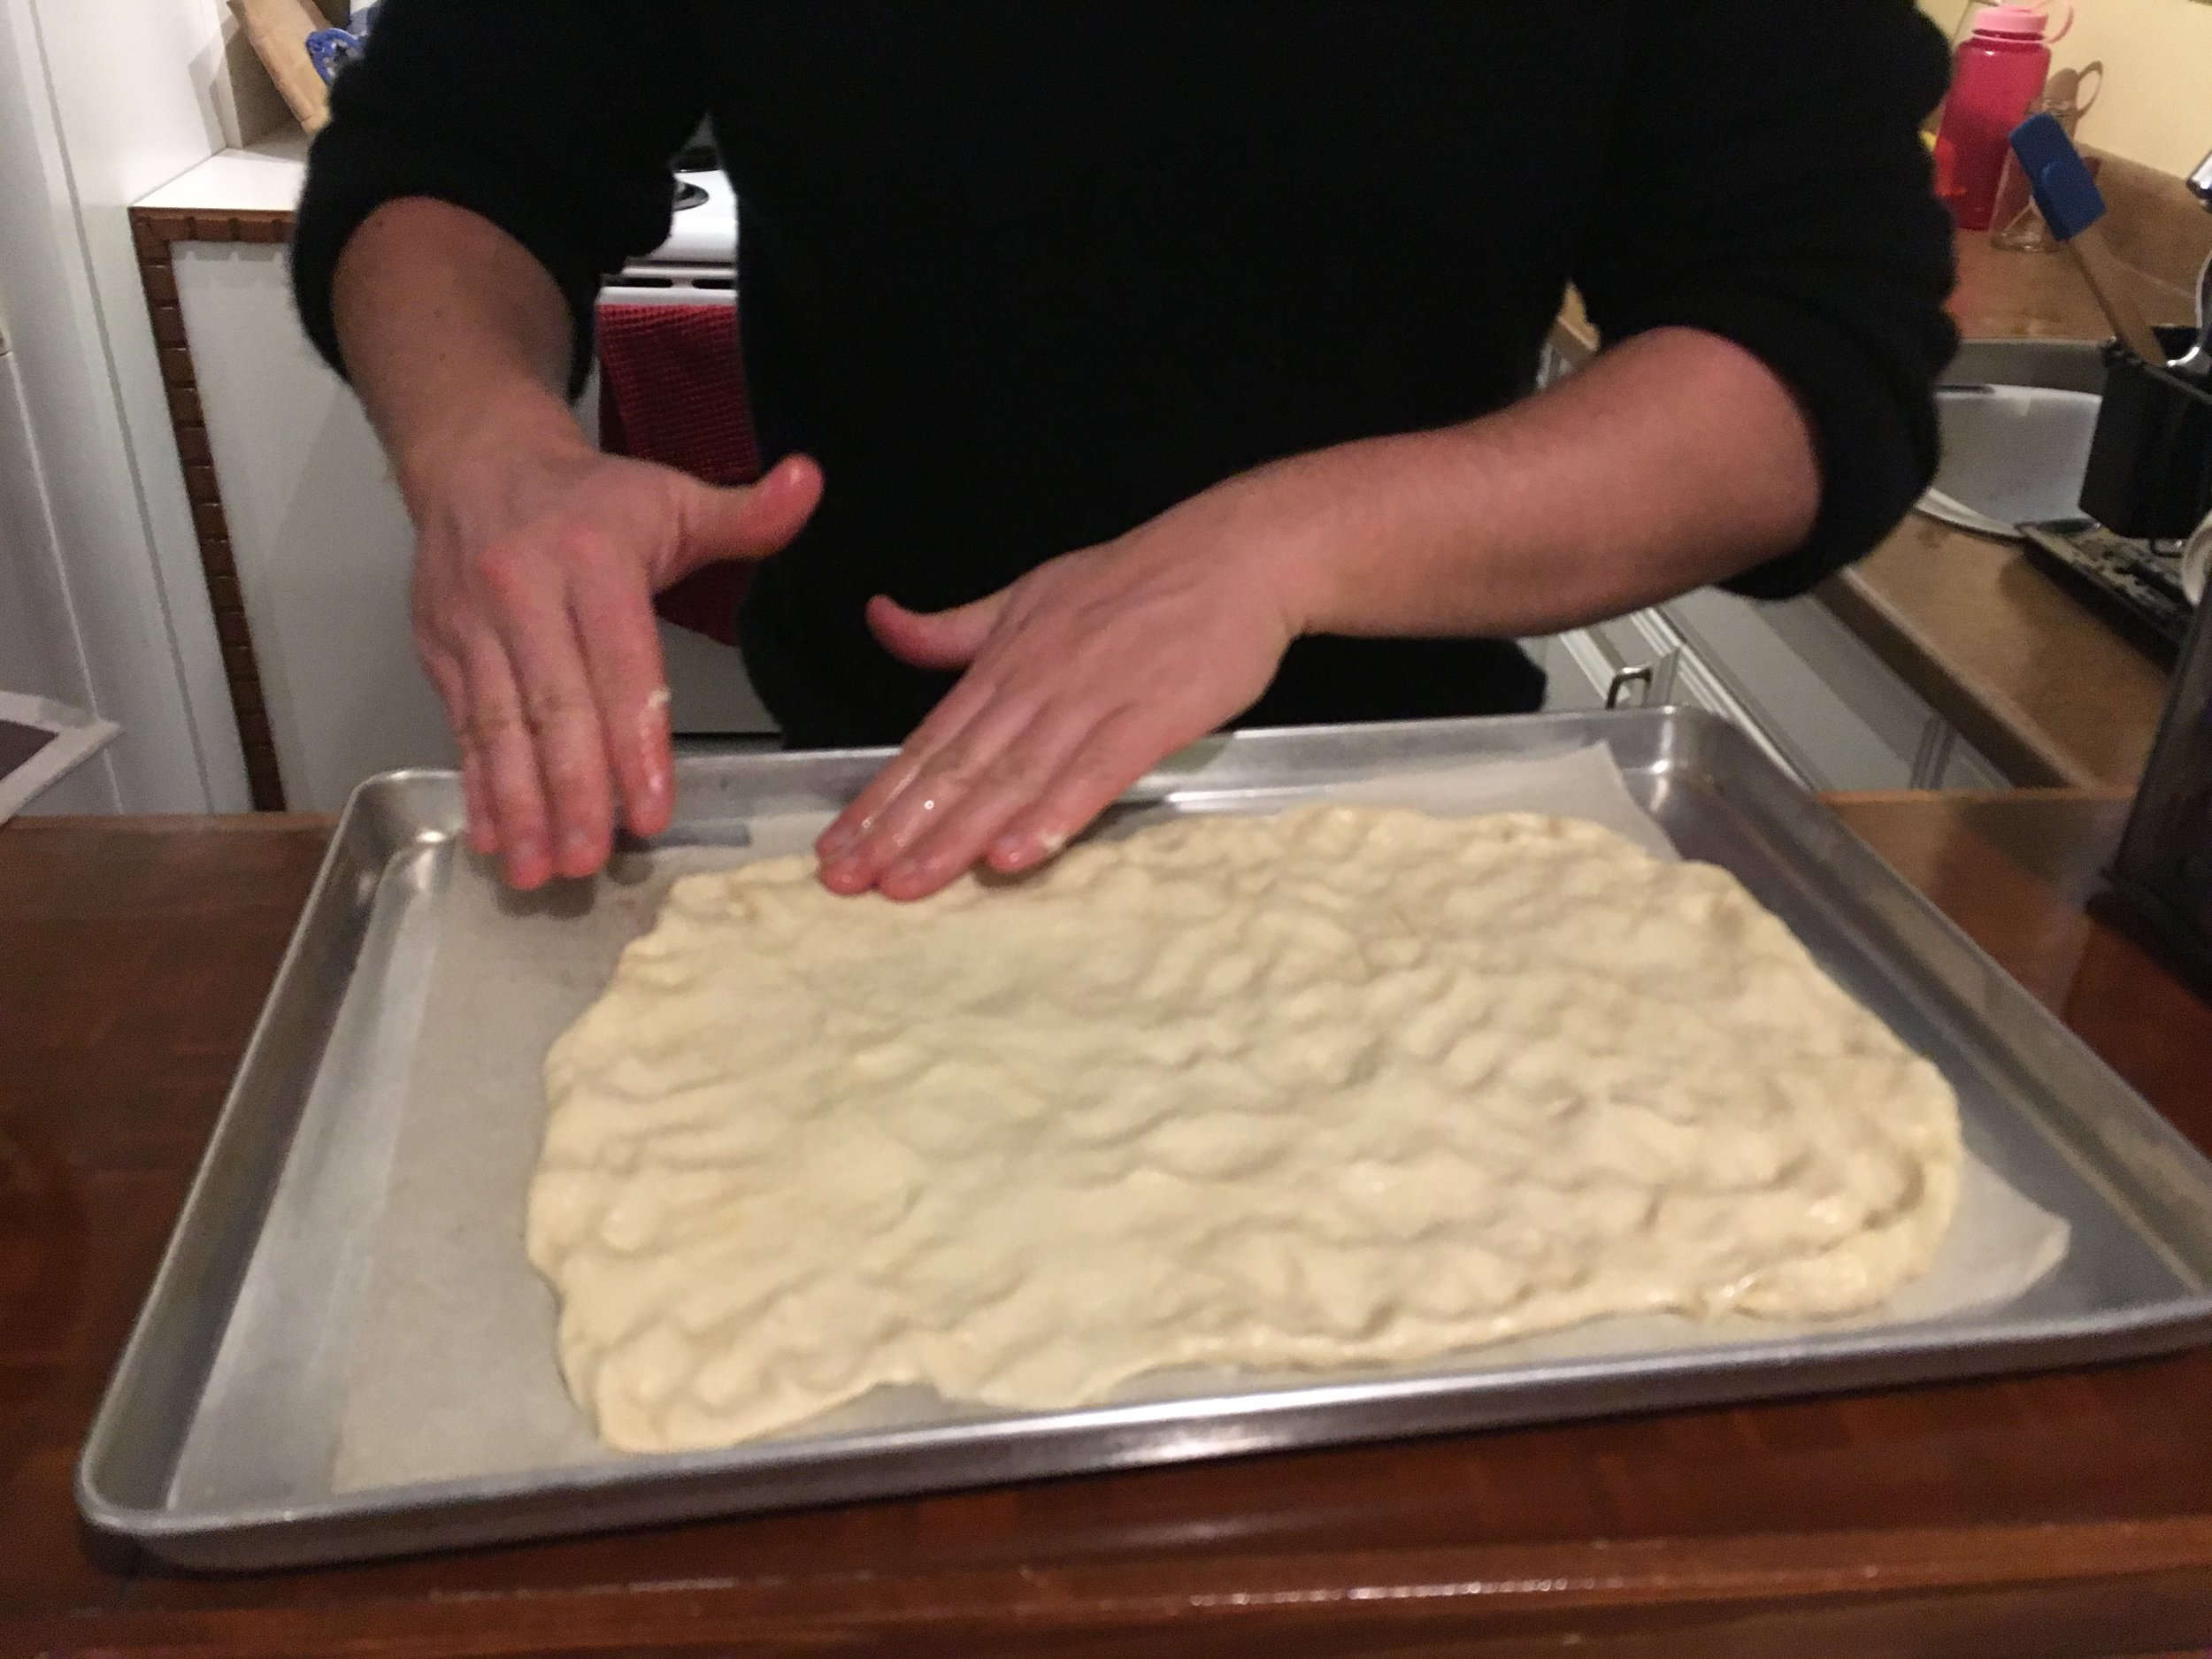 The pizza dough